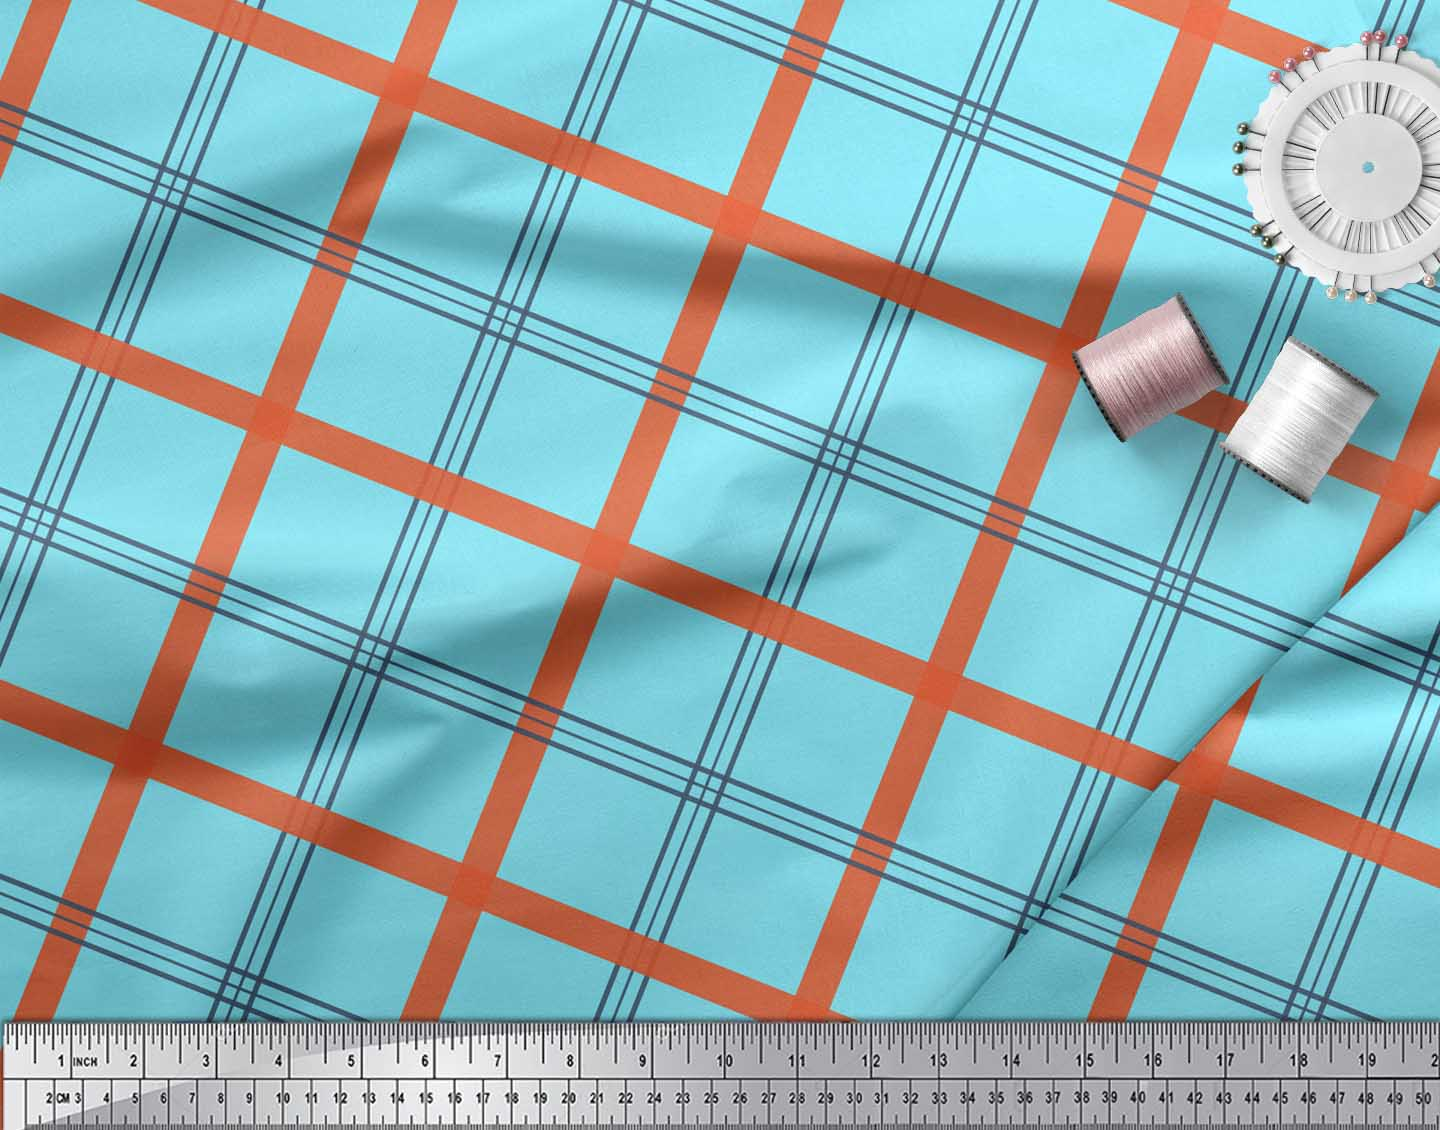 Soimoi-Blue-Cotton-Poplin-Fabric-Check-Check-Decor-Fabric-Printed-kz2 thumbnail 3